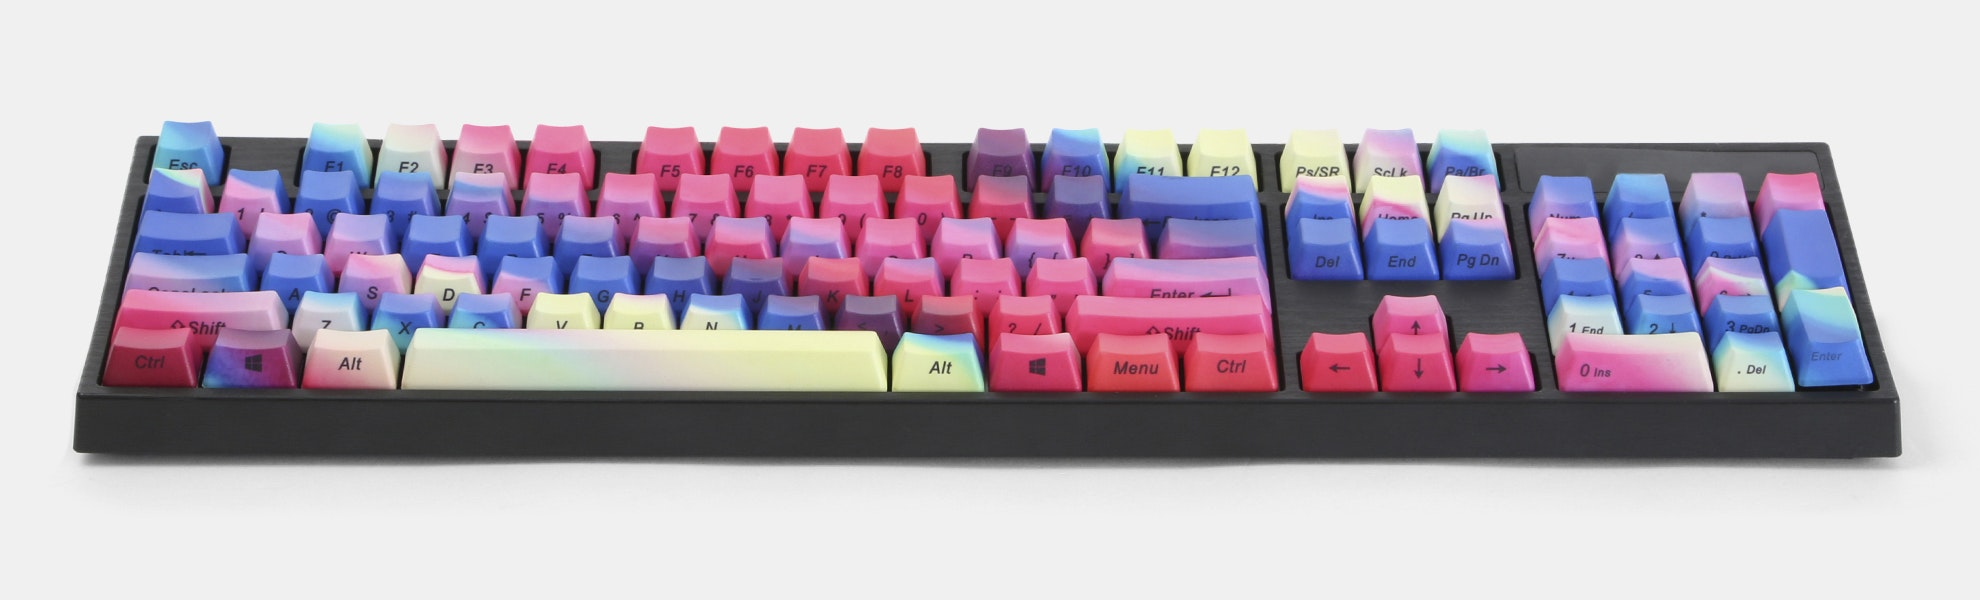 Rainbow PBT Dip-Engraved Keycap Set